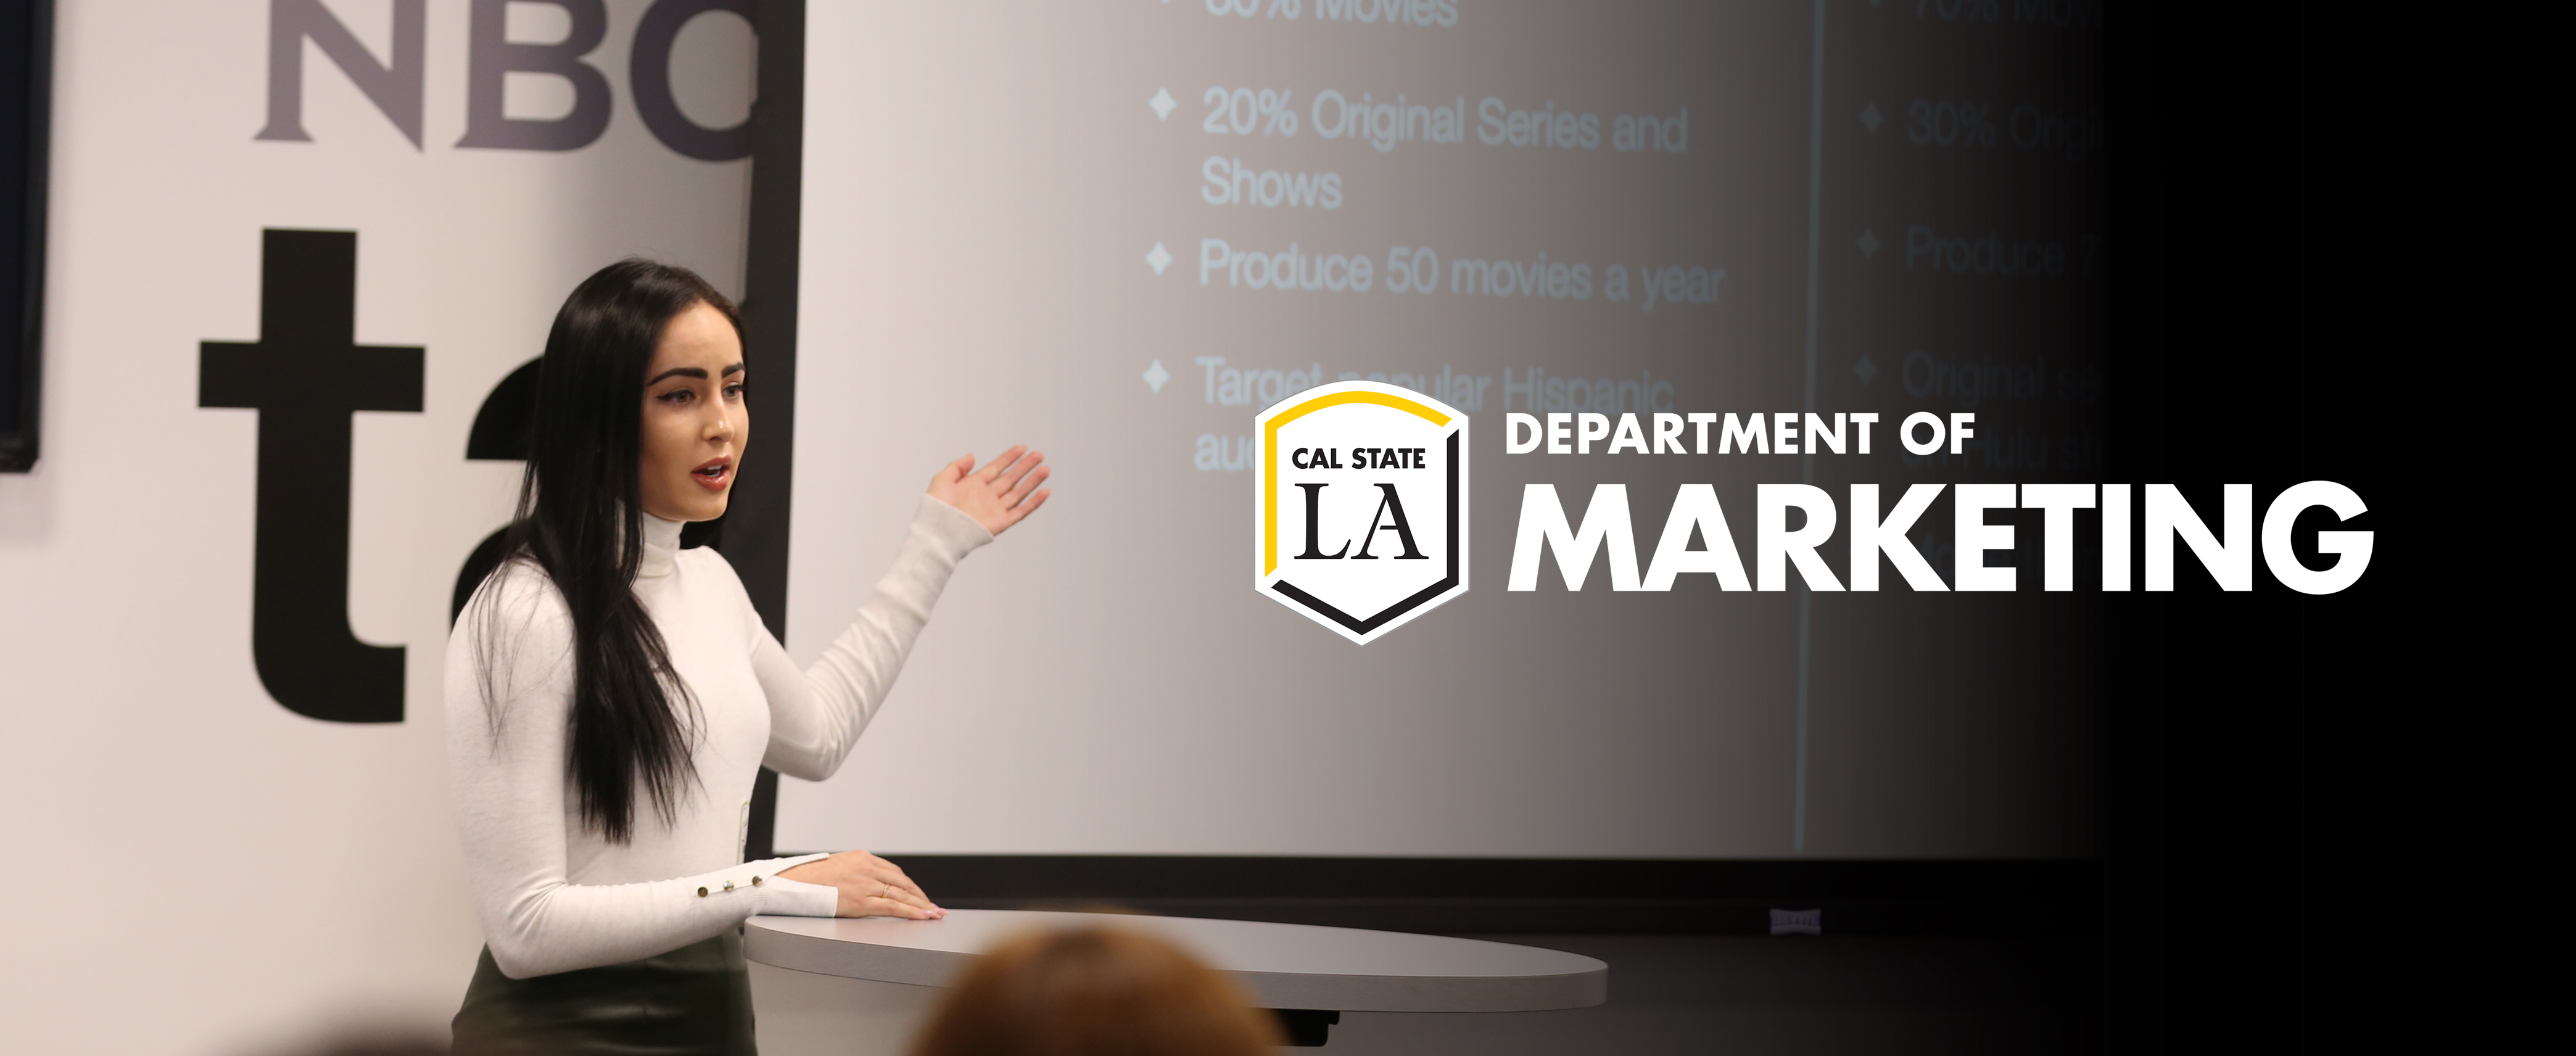 Cal State LA College of Business & Economics   Department of Marketing